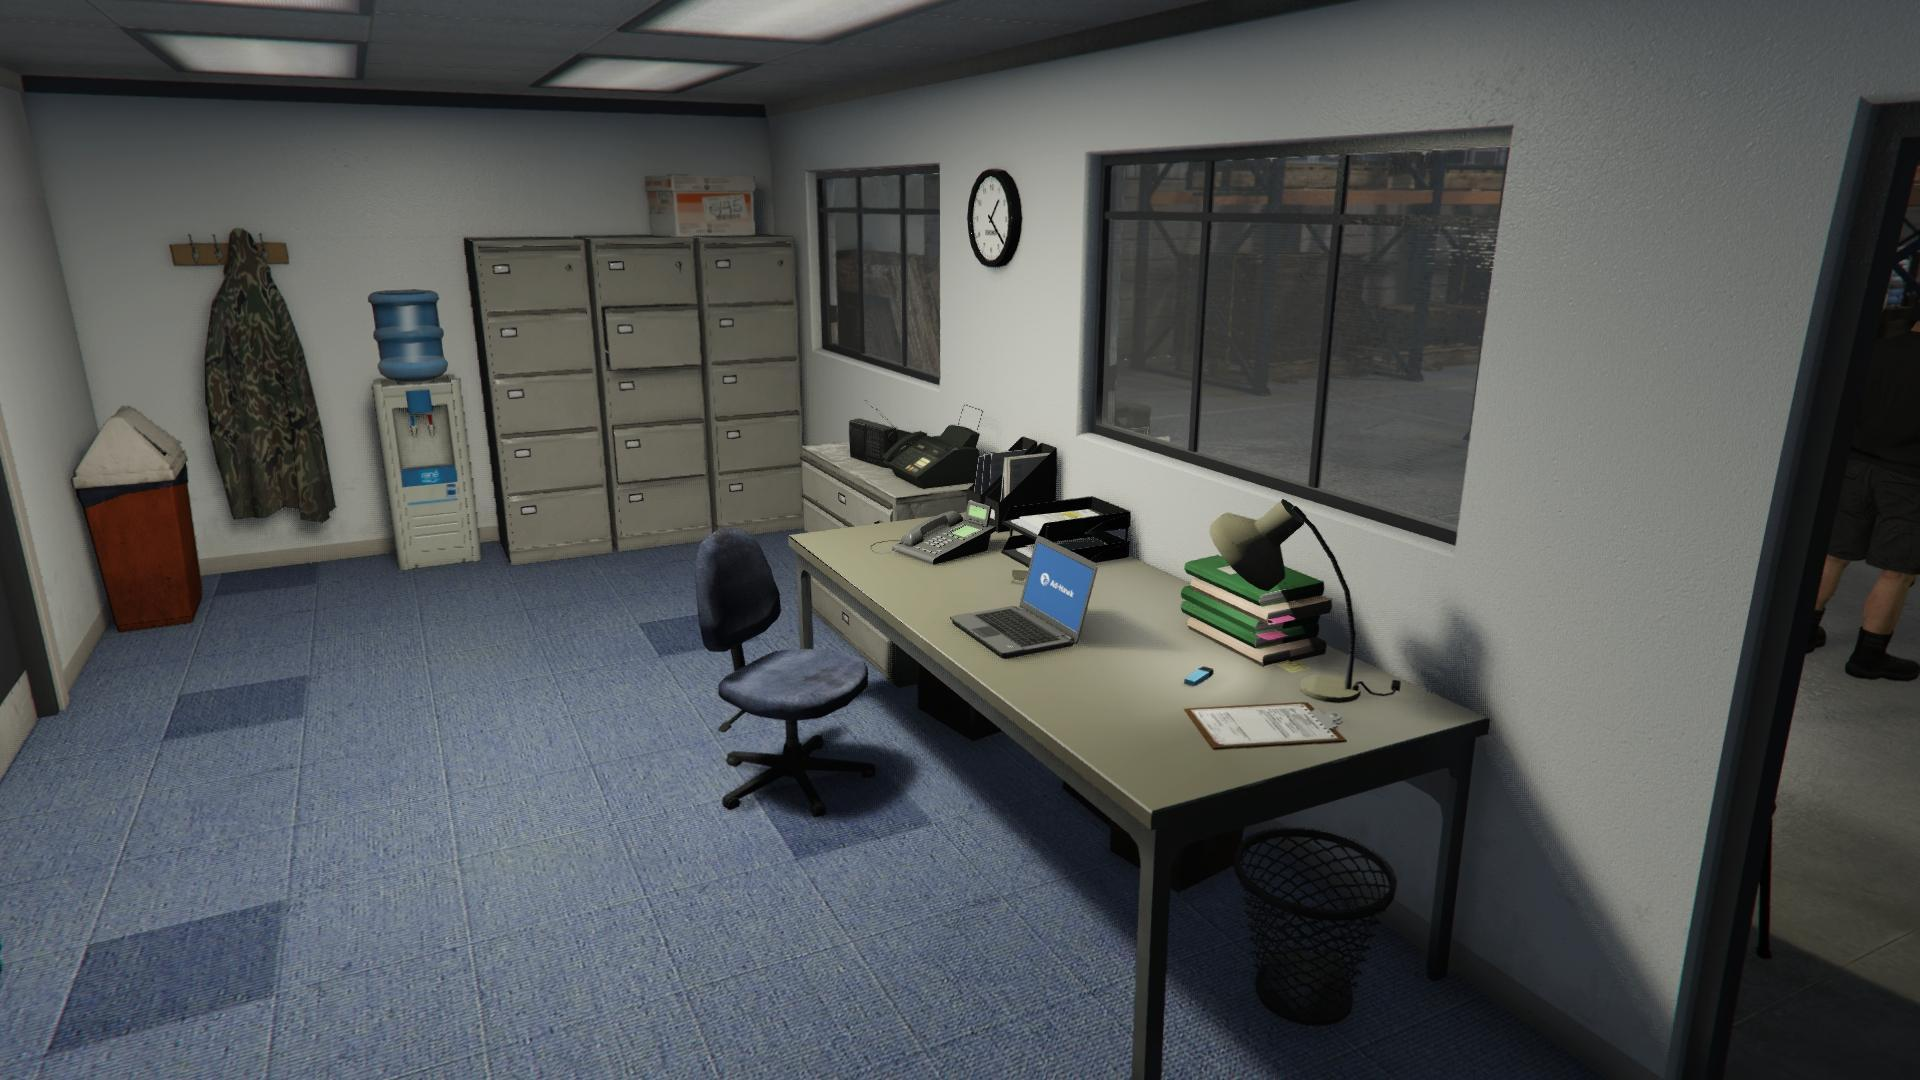 Gta Online How To Buy Office Garage Furniture Design For Your Home